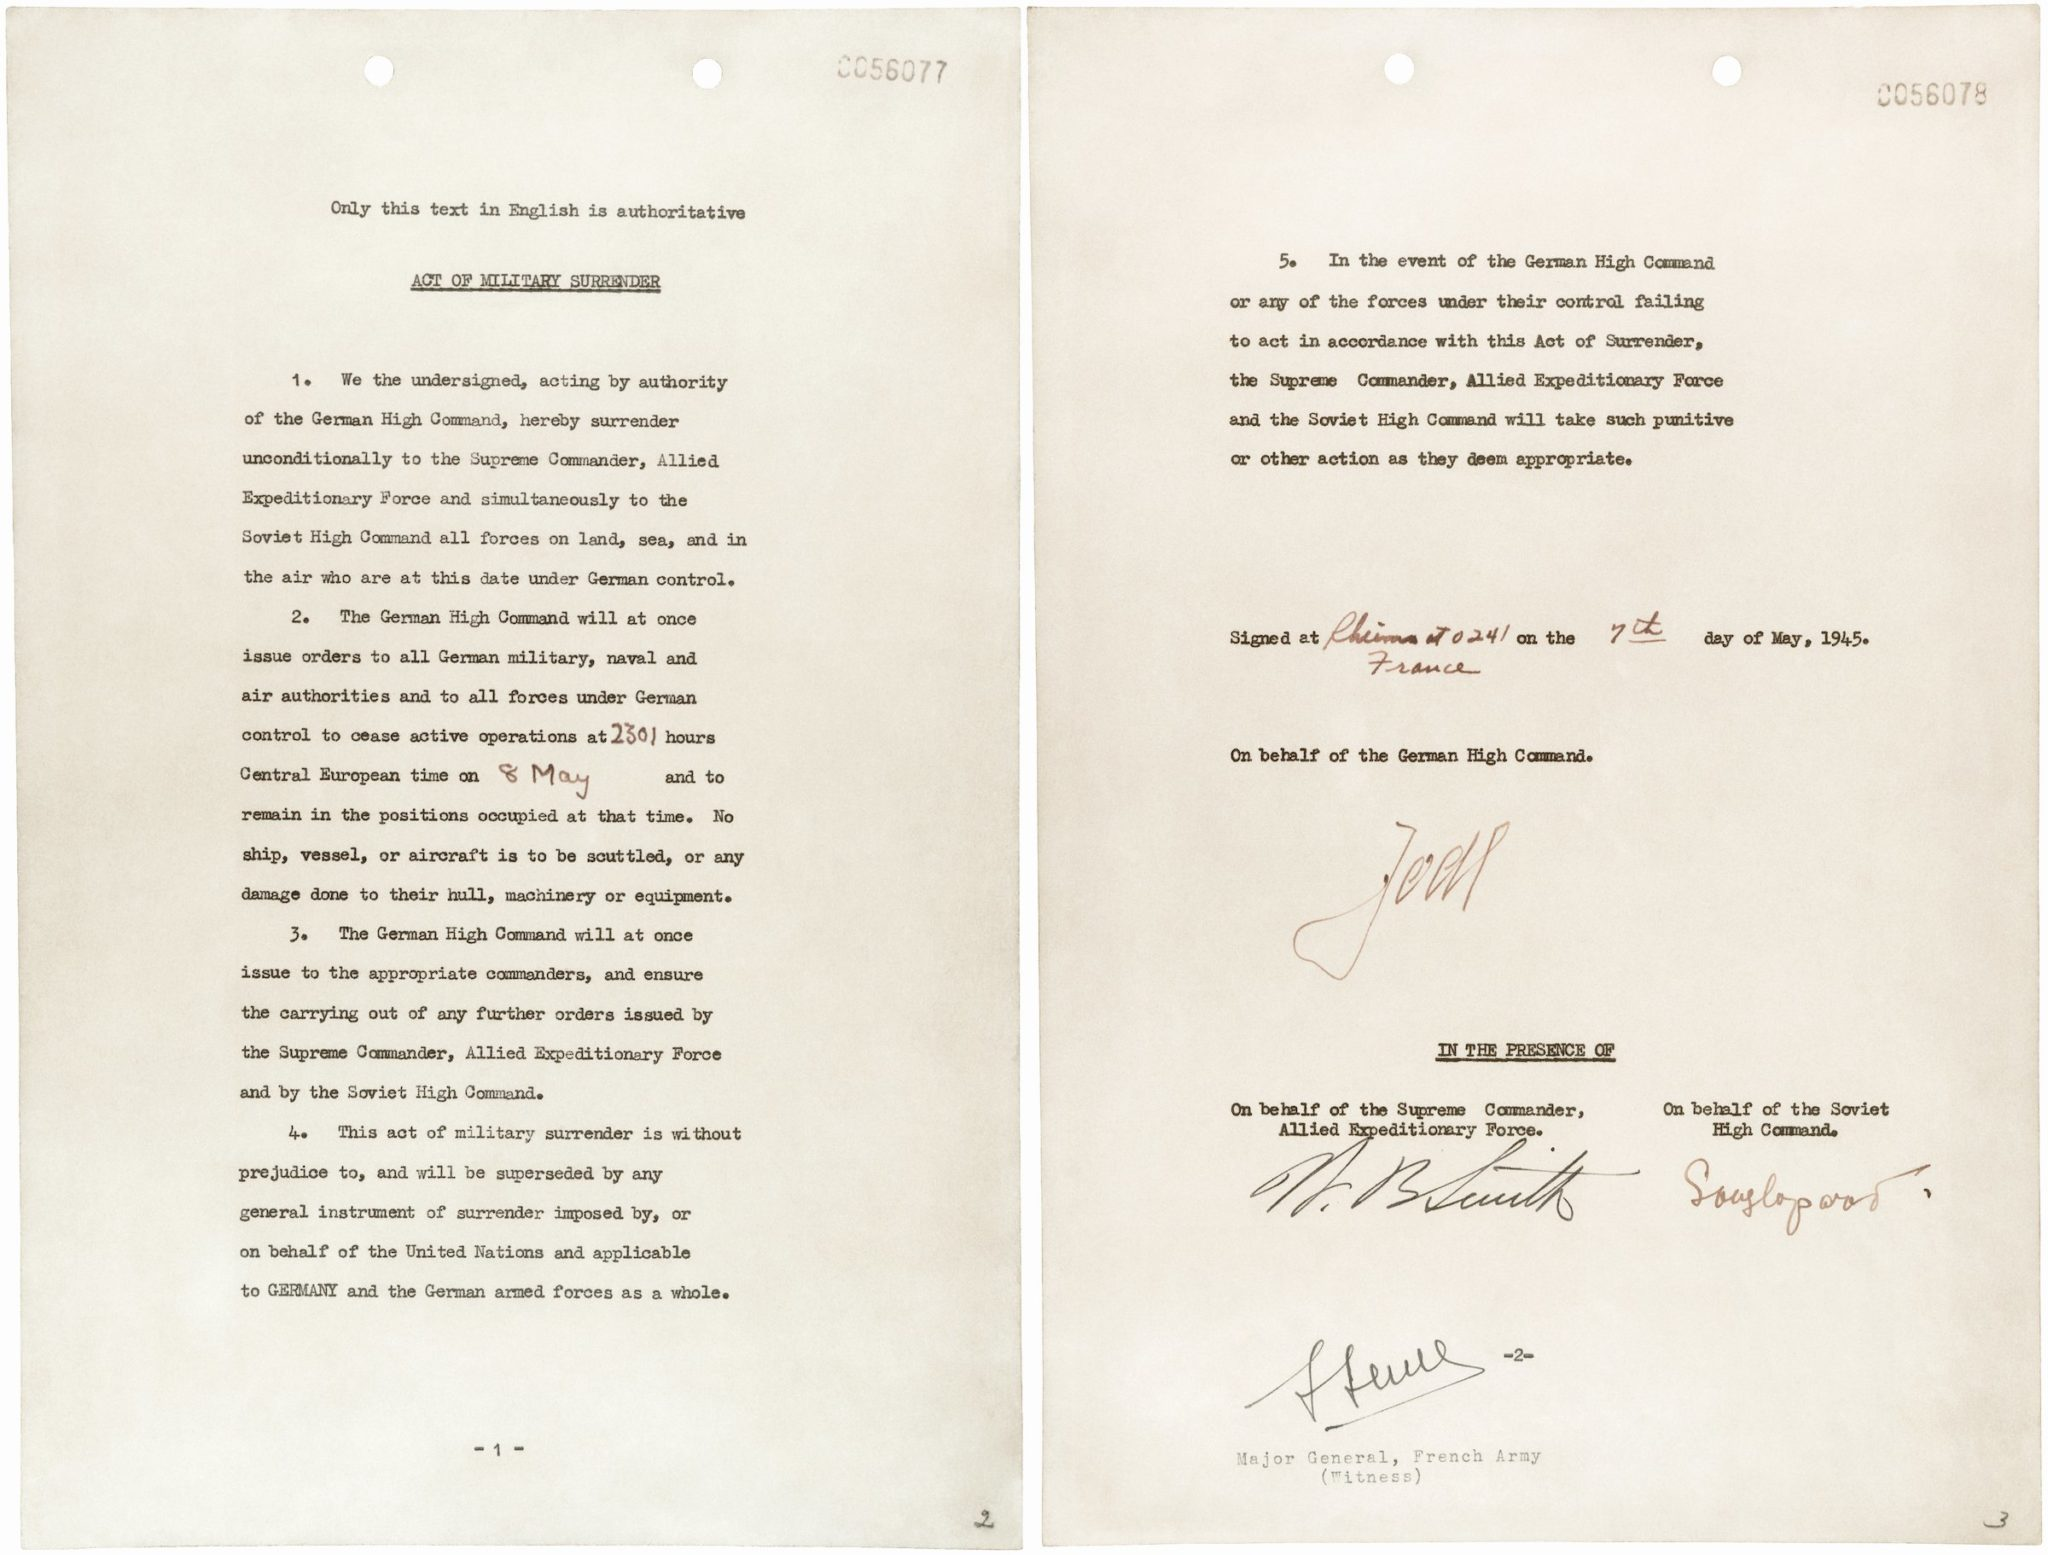 german_instrument_of_surrender2 (1)